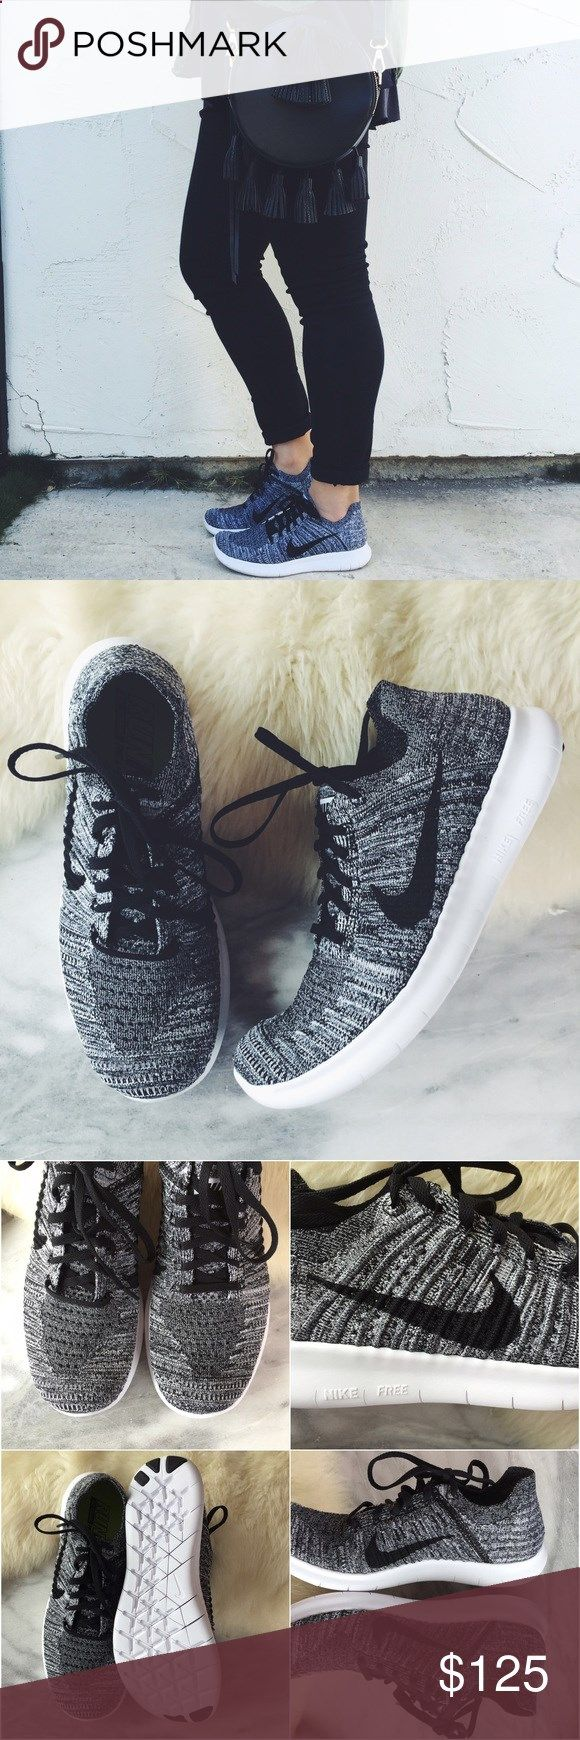 Nike Free RN Flyknit Oreo Sneakers •More cushioned than the Nike Free RN Motion Flyknit, the Nike Free RN Flyknit Womens Running features a newly designed midsole pattern that expands, flexes and contracts with your foot with every step. Its sock-like upper provides the incredible fit of Flyknit for total comfort throughout your run. •Women's size 9.5, true to size. •New in box (no lid). •NO TRADES/HOLDS/PAYPAL/MERC/VINTED/NONSENSE. Nike Shoes Sneakers